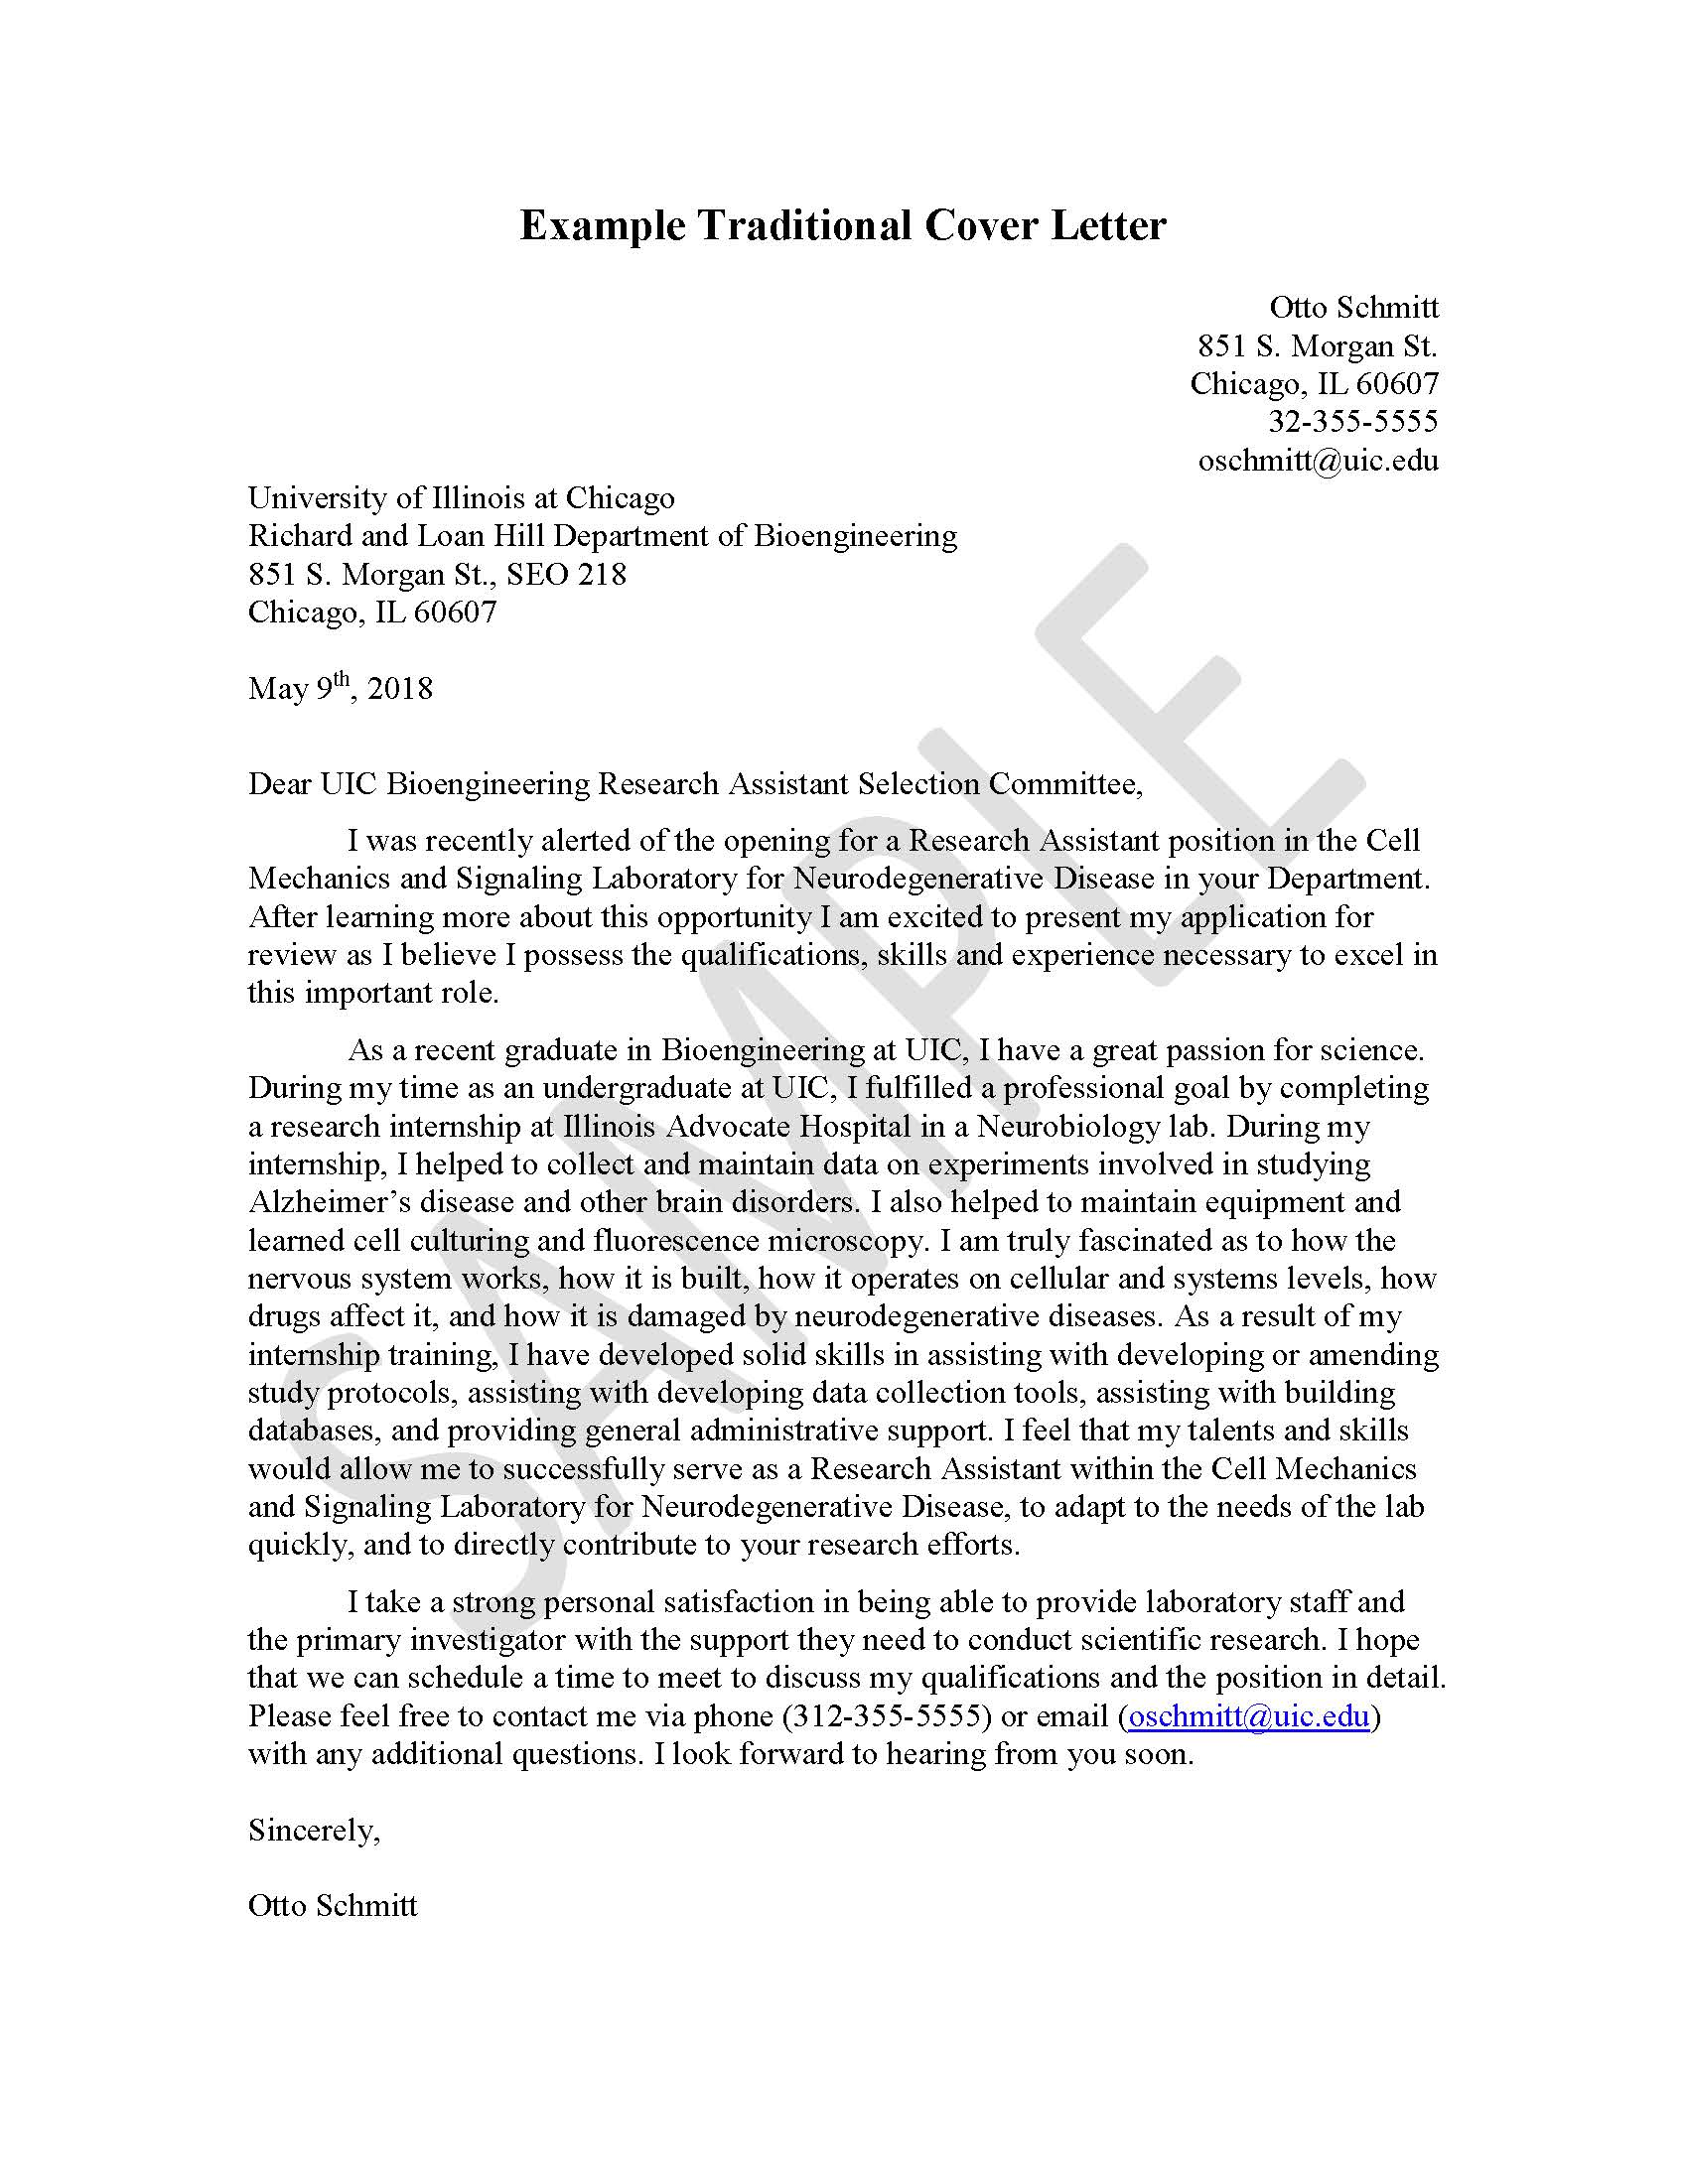 Traditional Sample Cover Letter | Engineering Career Center ...